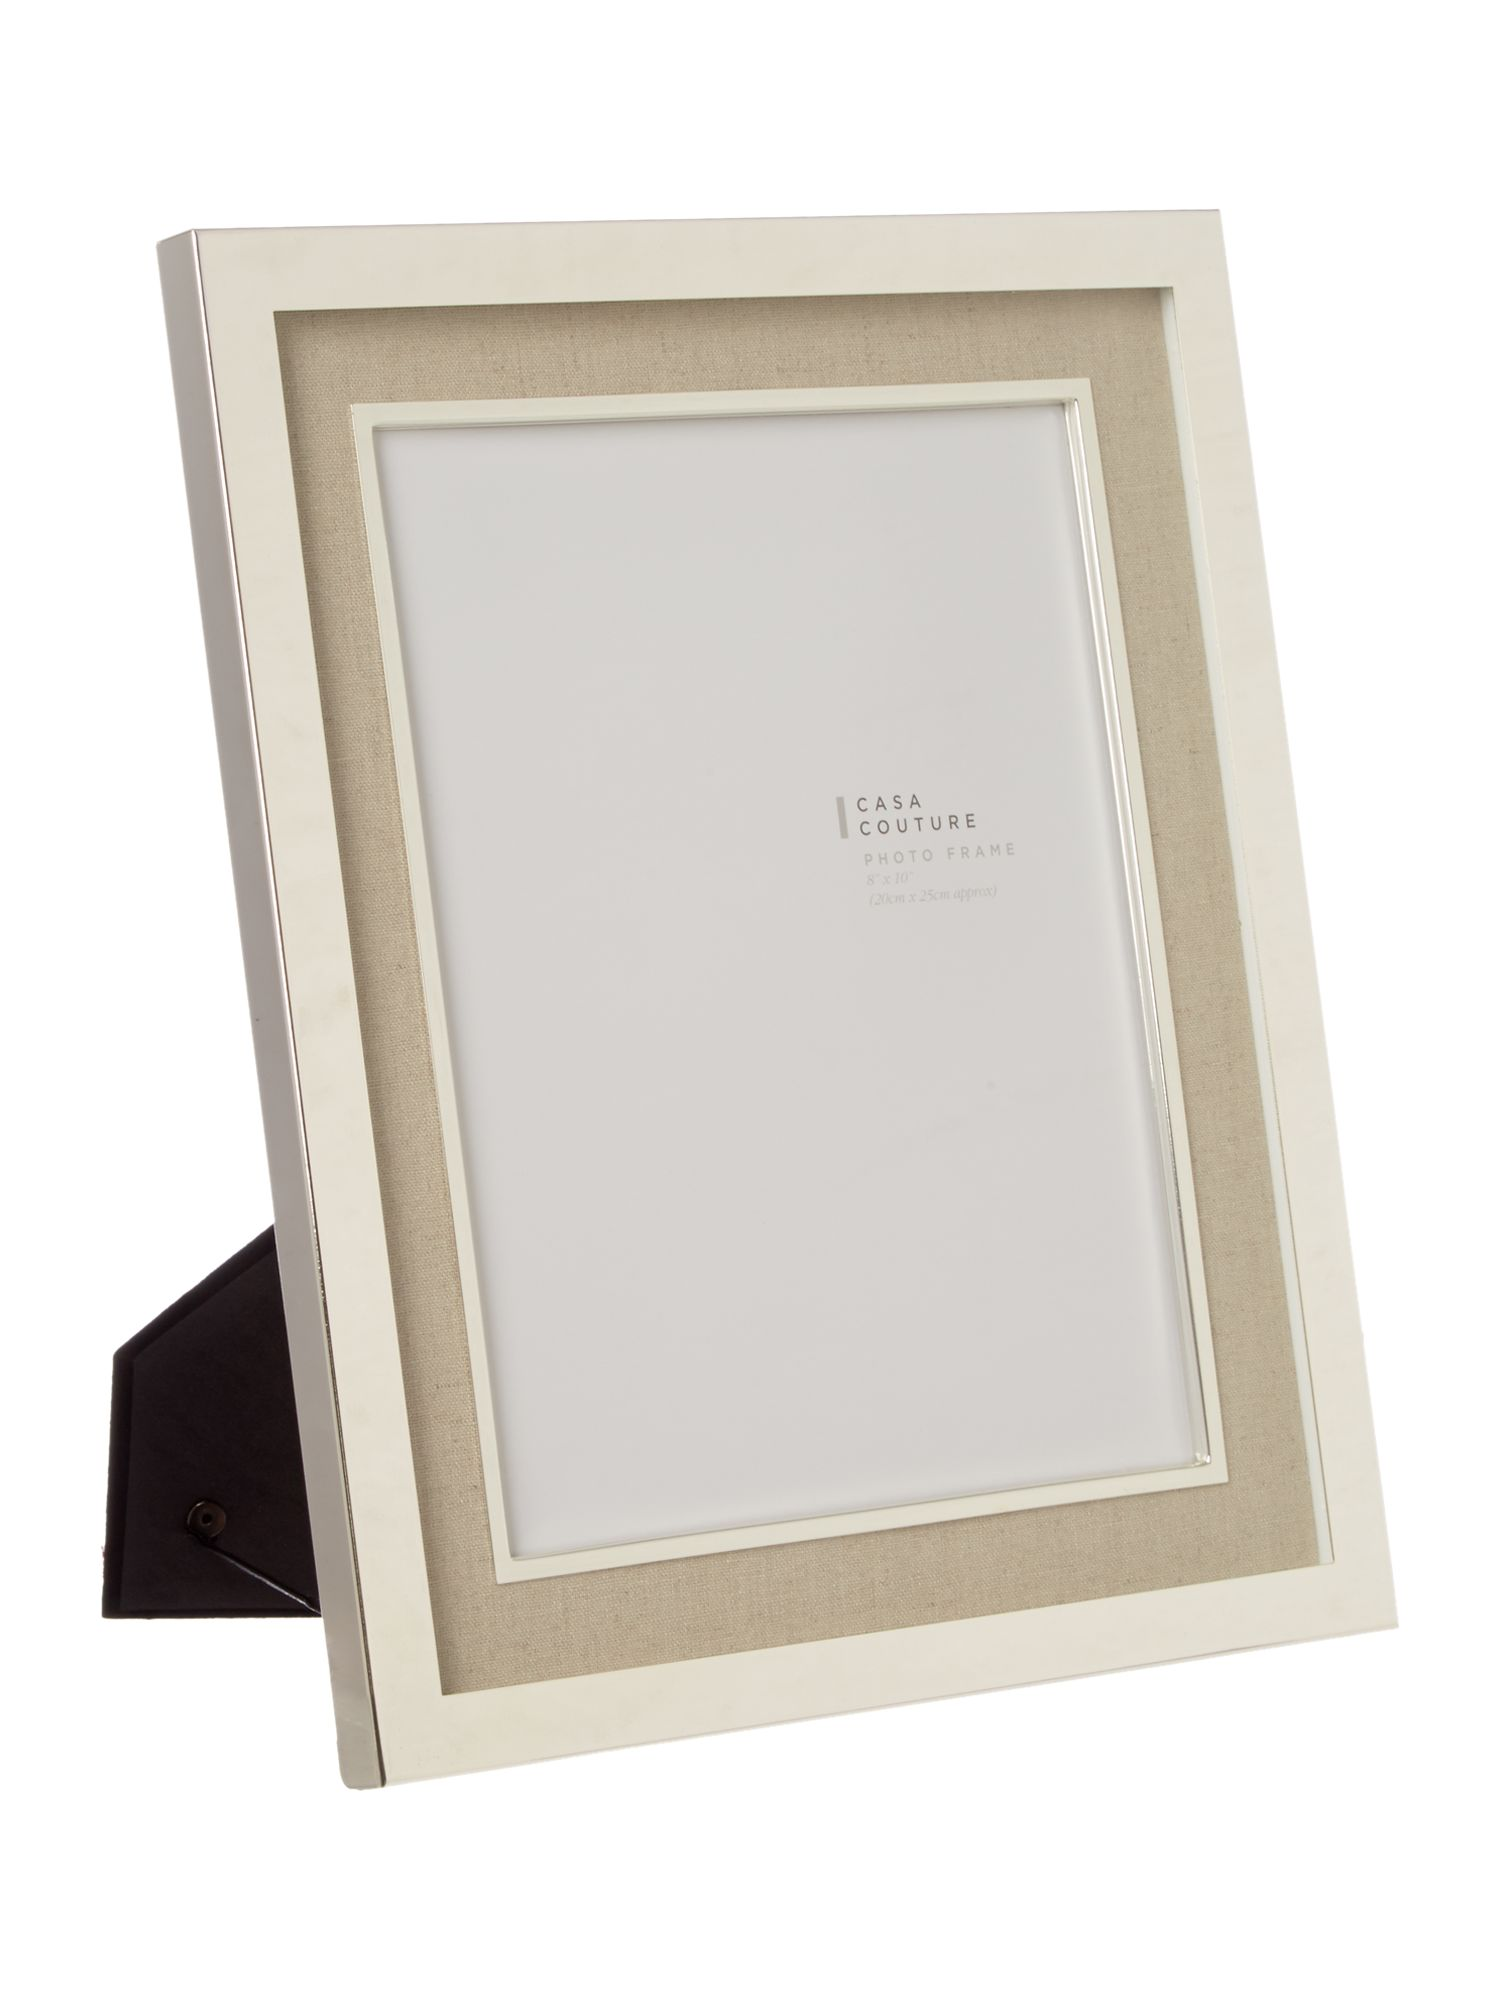 Cream fabric photo frame 8x10